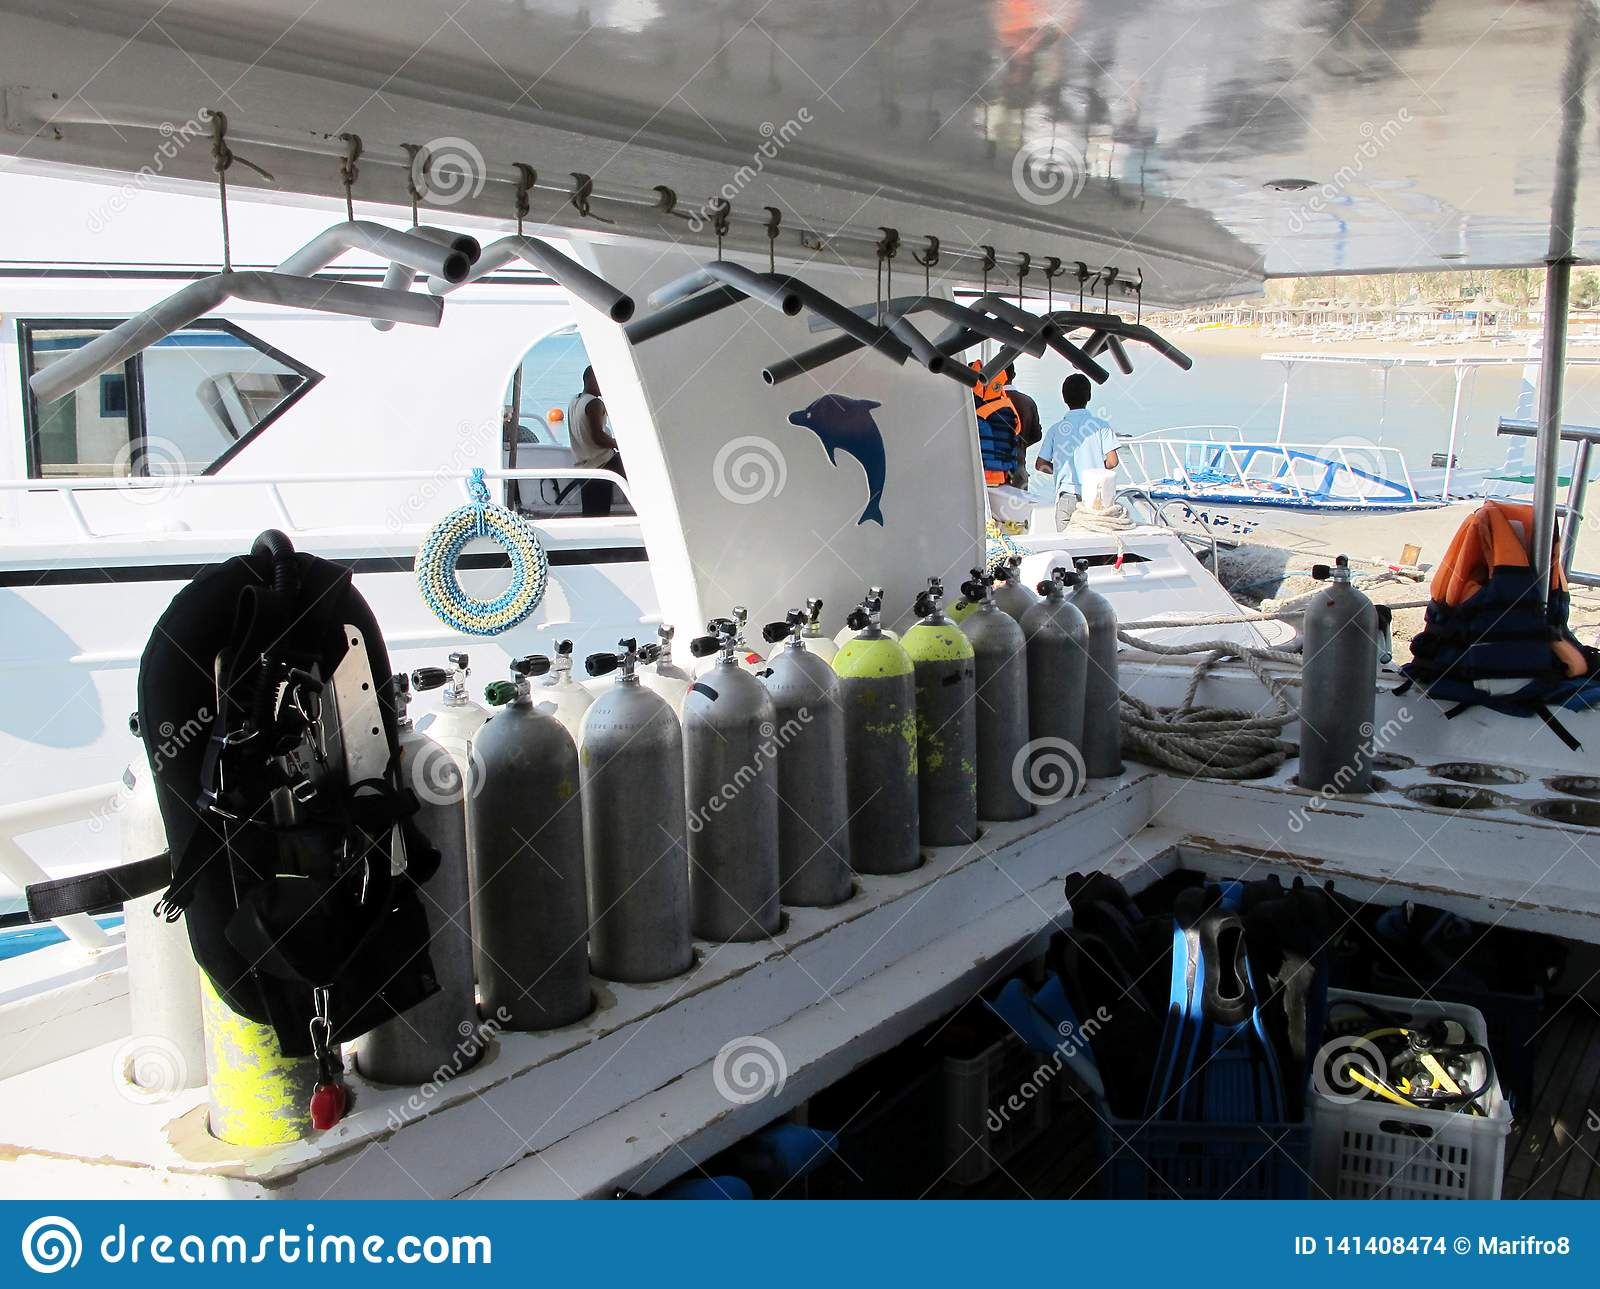 Underwater diving equipment. Many diving cylinders. Boat to sail